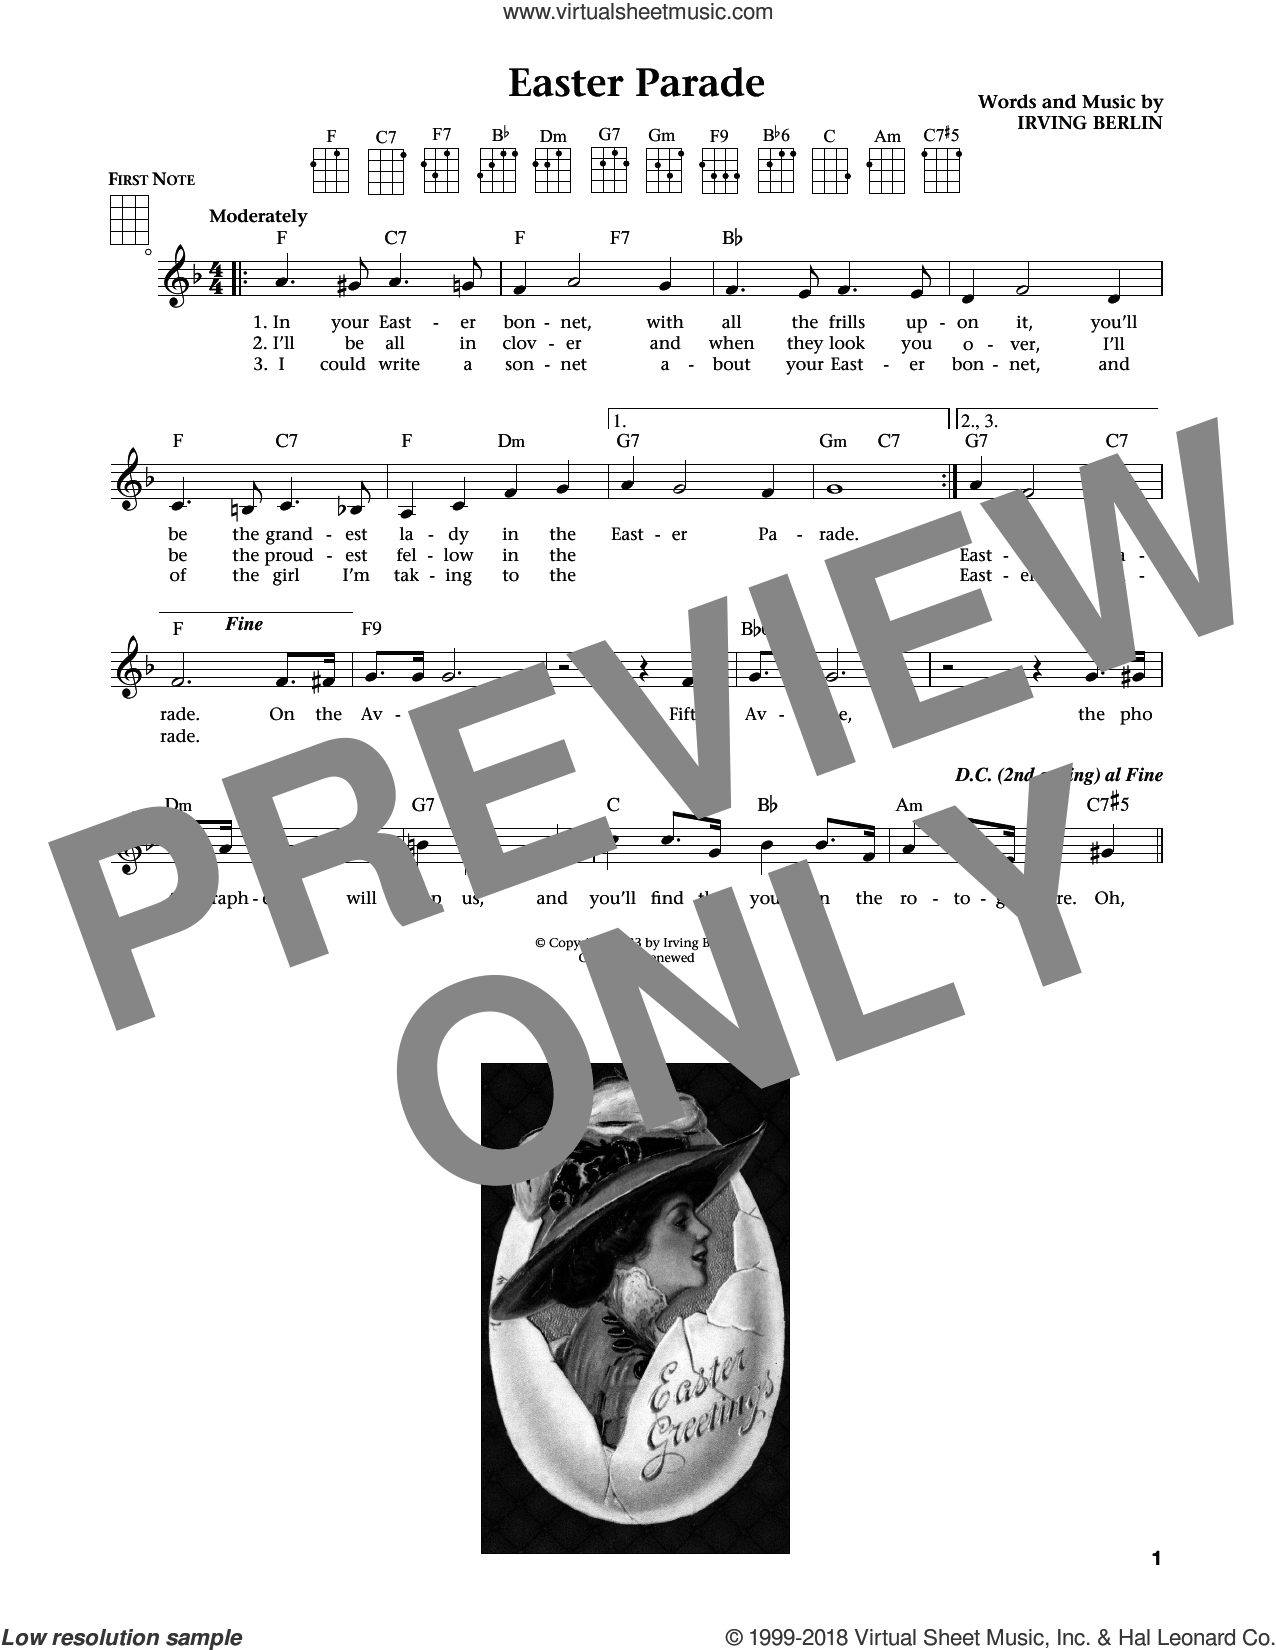 Easter Parade (from The Daily Ukulele) (arr. Liz and Jim Beloff) sheet music for ukulele by Irving Berlin, Jim Beloff and Liz Beloff, intermediate skill level